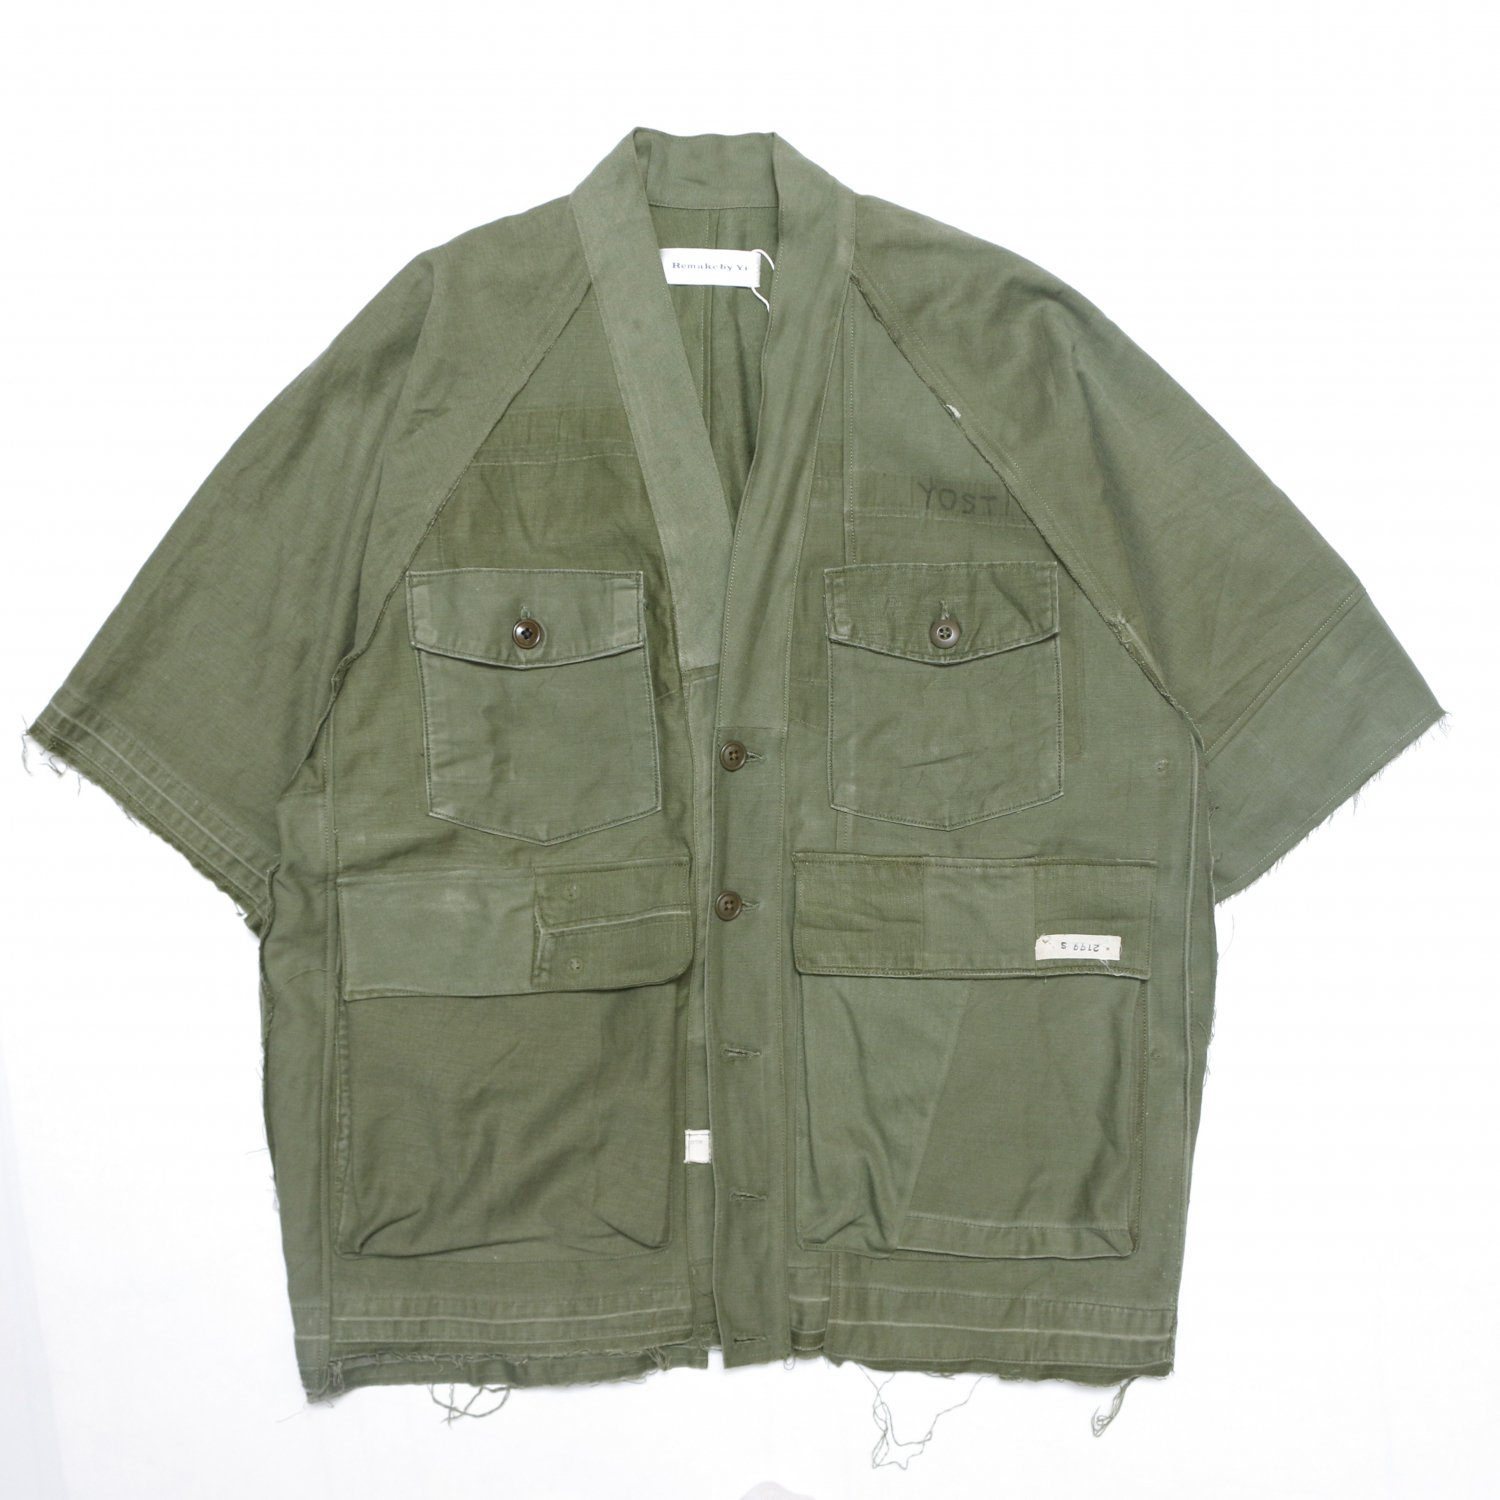 <img class='new_mark_img1' src='https://img.shop-pro.jp/img/new/icons8.gif' style='border:none;display:inline;margin:0px;padding:0px;width:auto;' />Remake by Yi / Noragi Shirt (US ARMY OG-107*2)